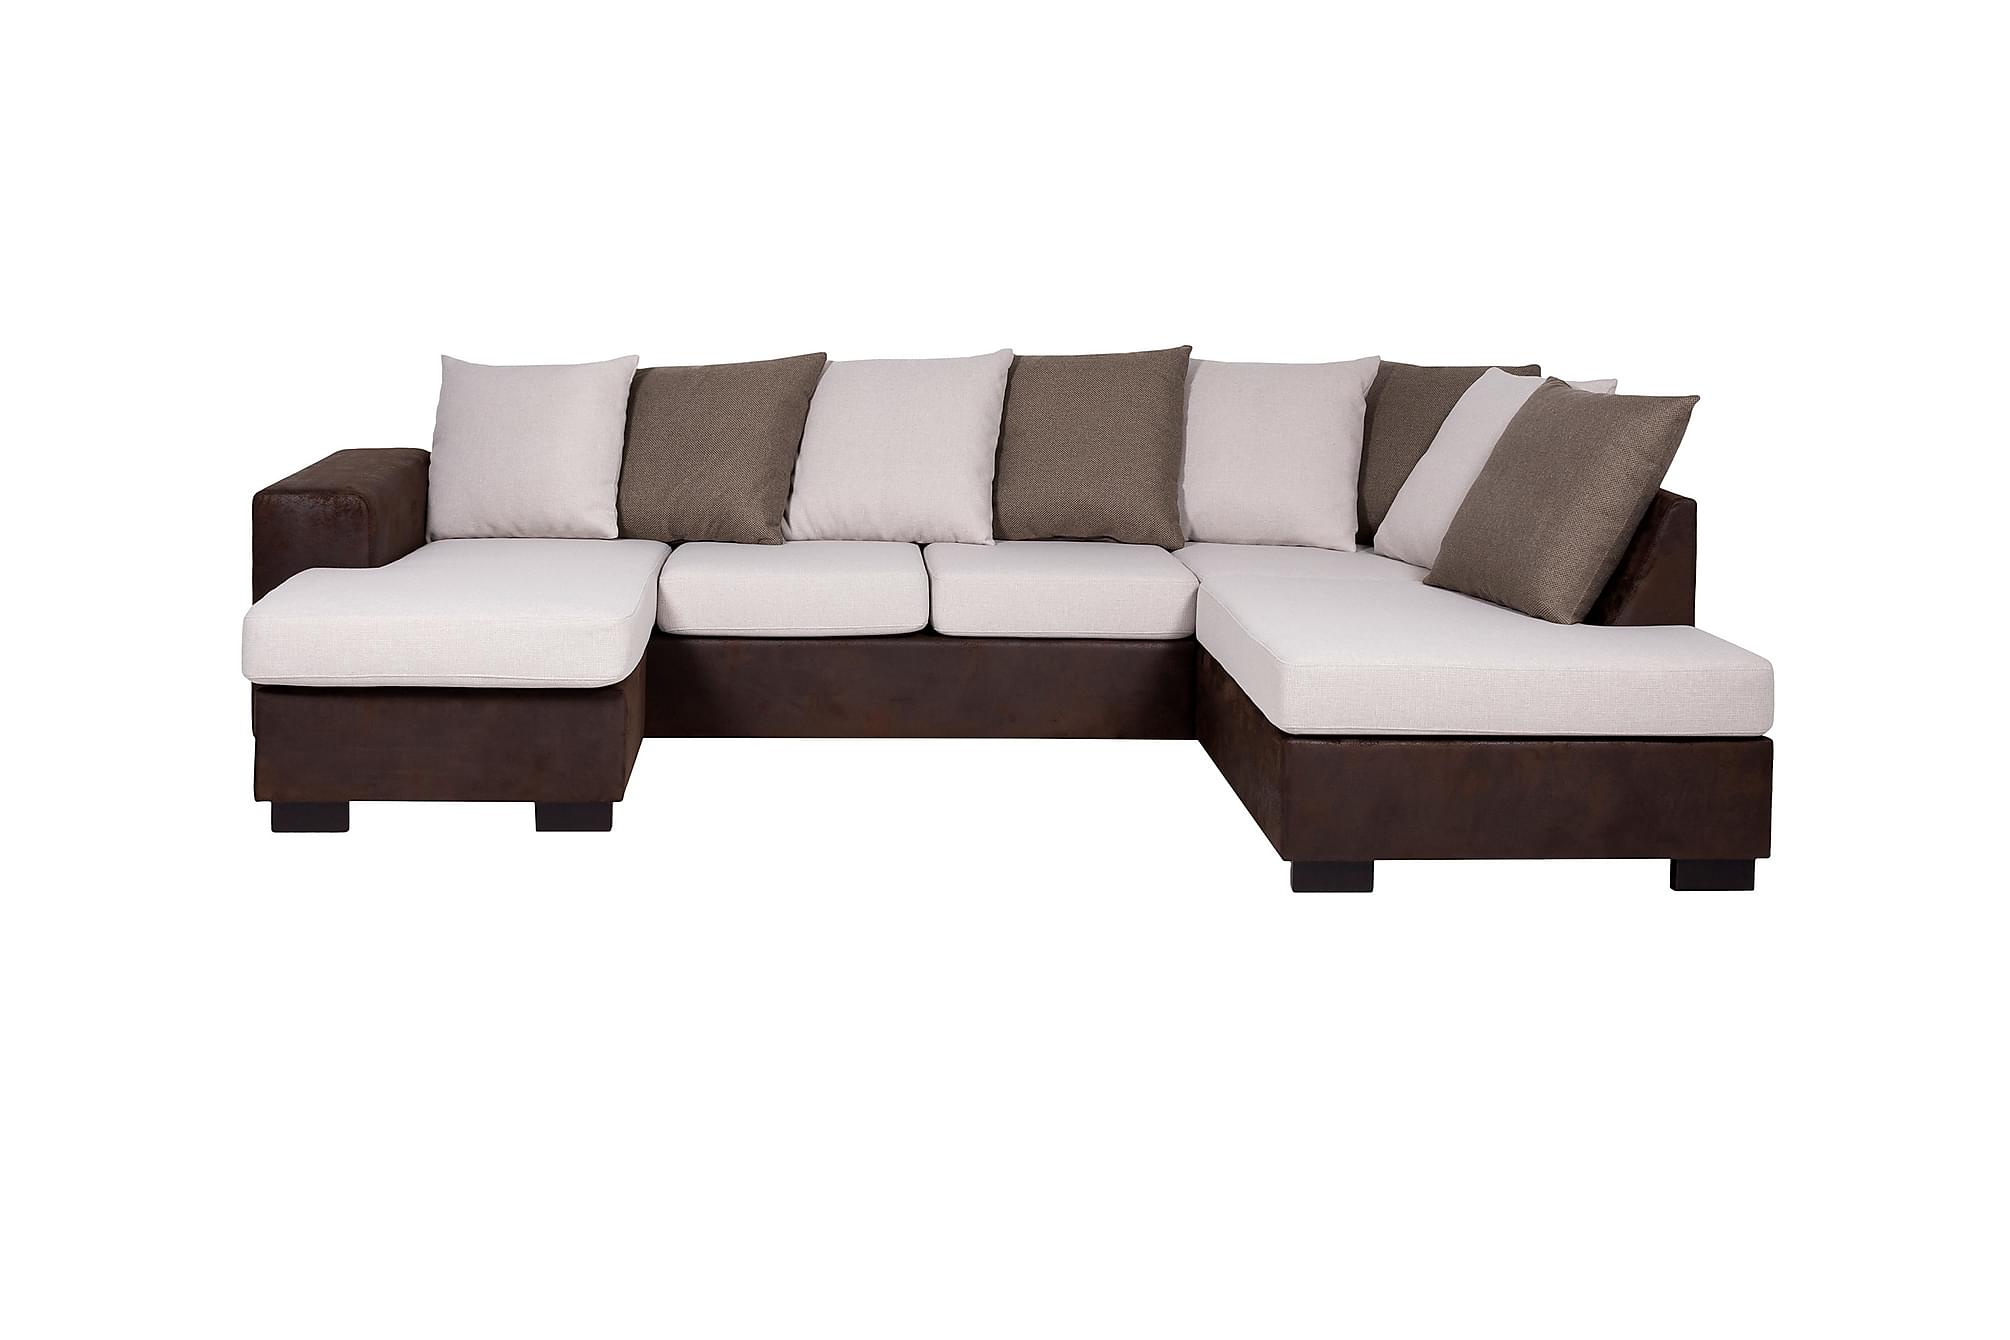 berlin large u sofa h yre beige divansofa sofaer. Black Bedroom Furniture Sets. Home Design Ideas